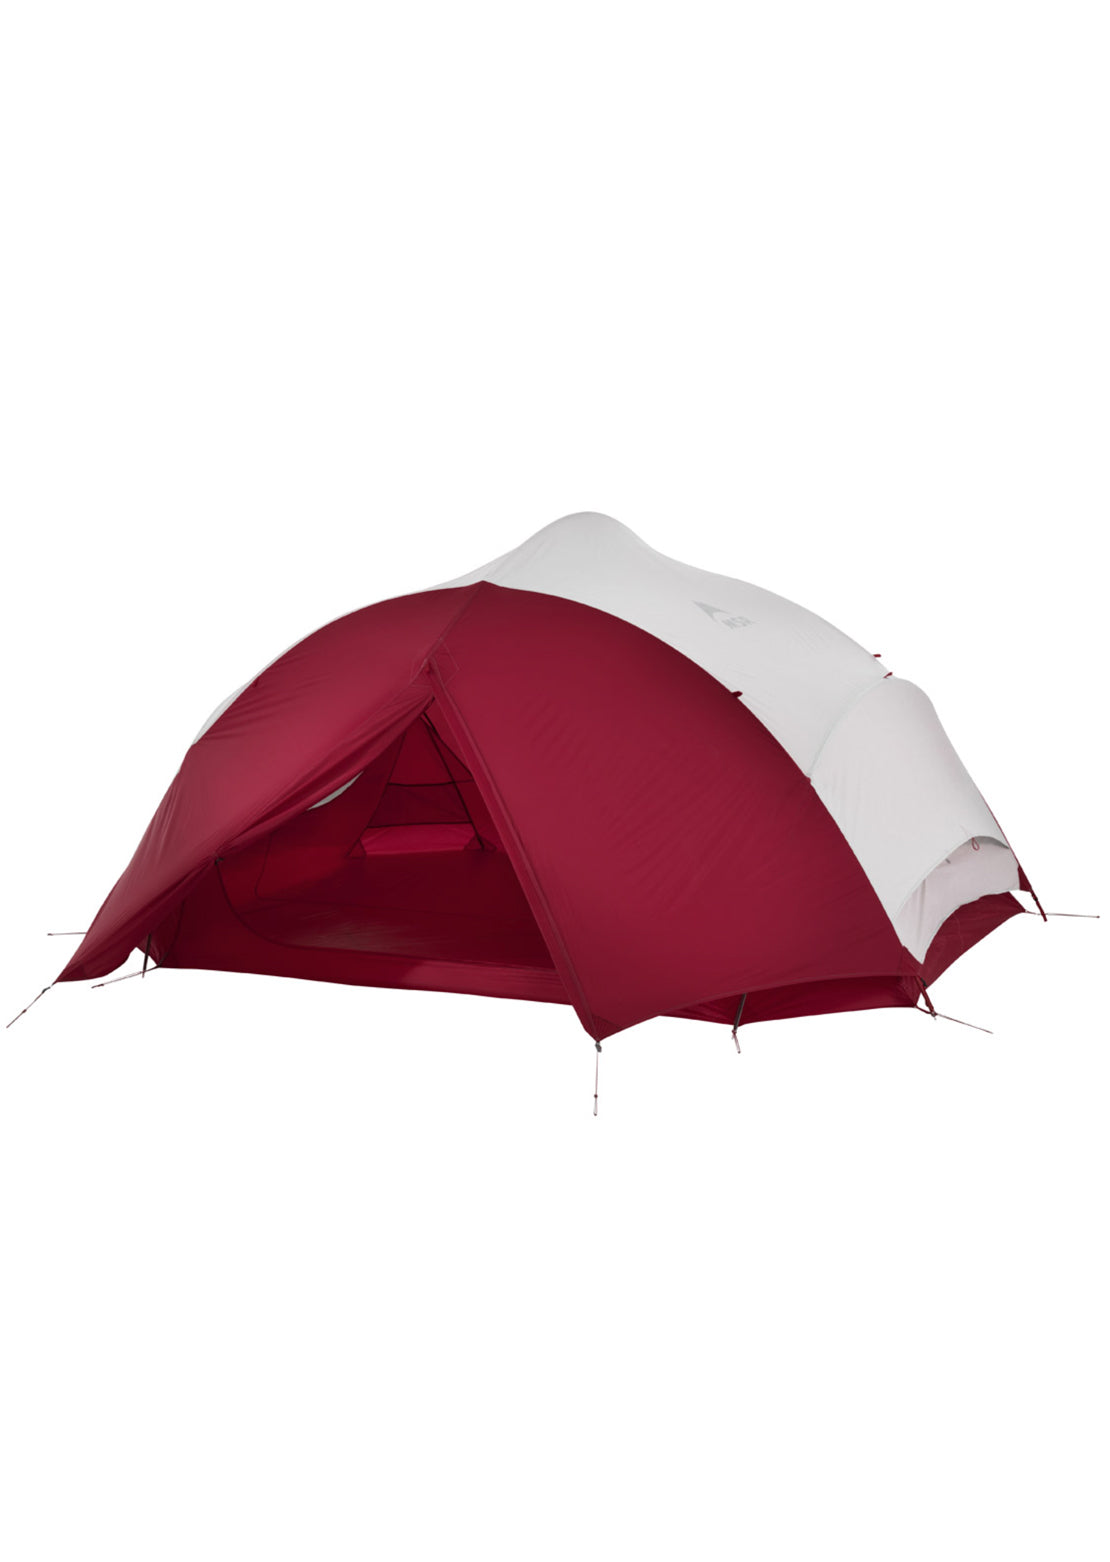 MSR Hubba NX Fast & Light Tent Body